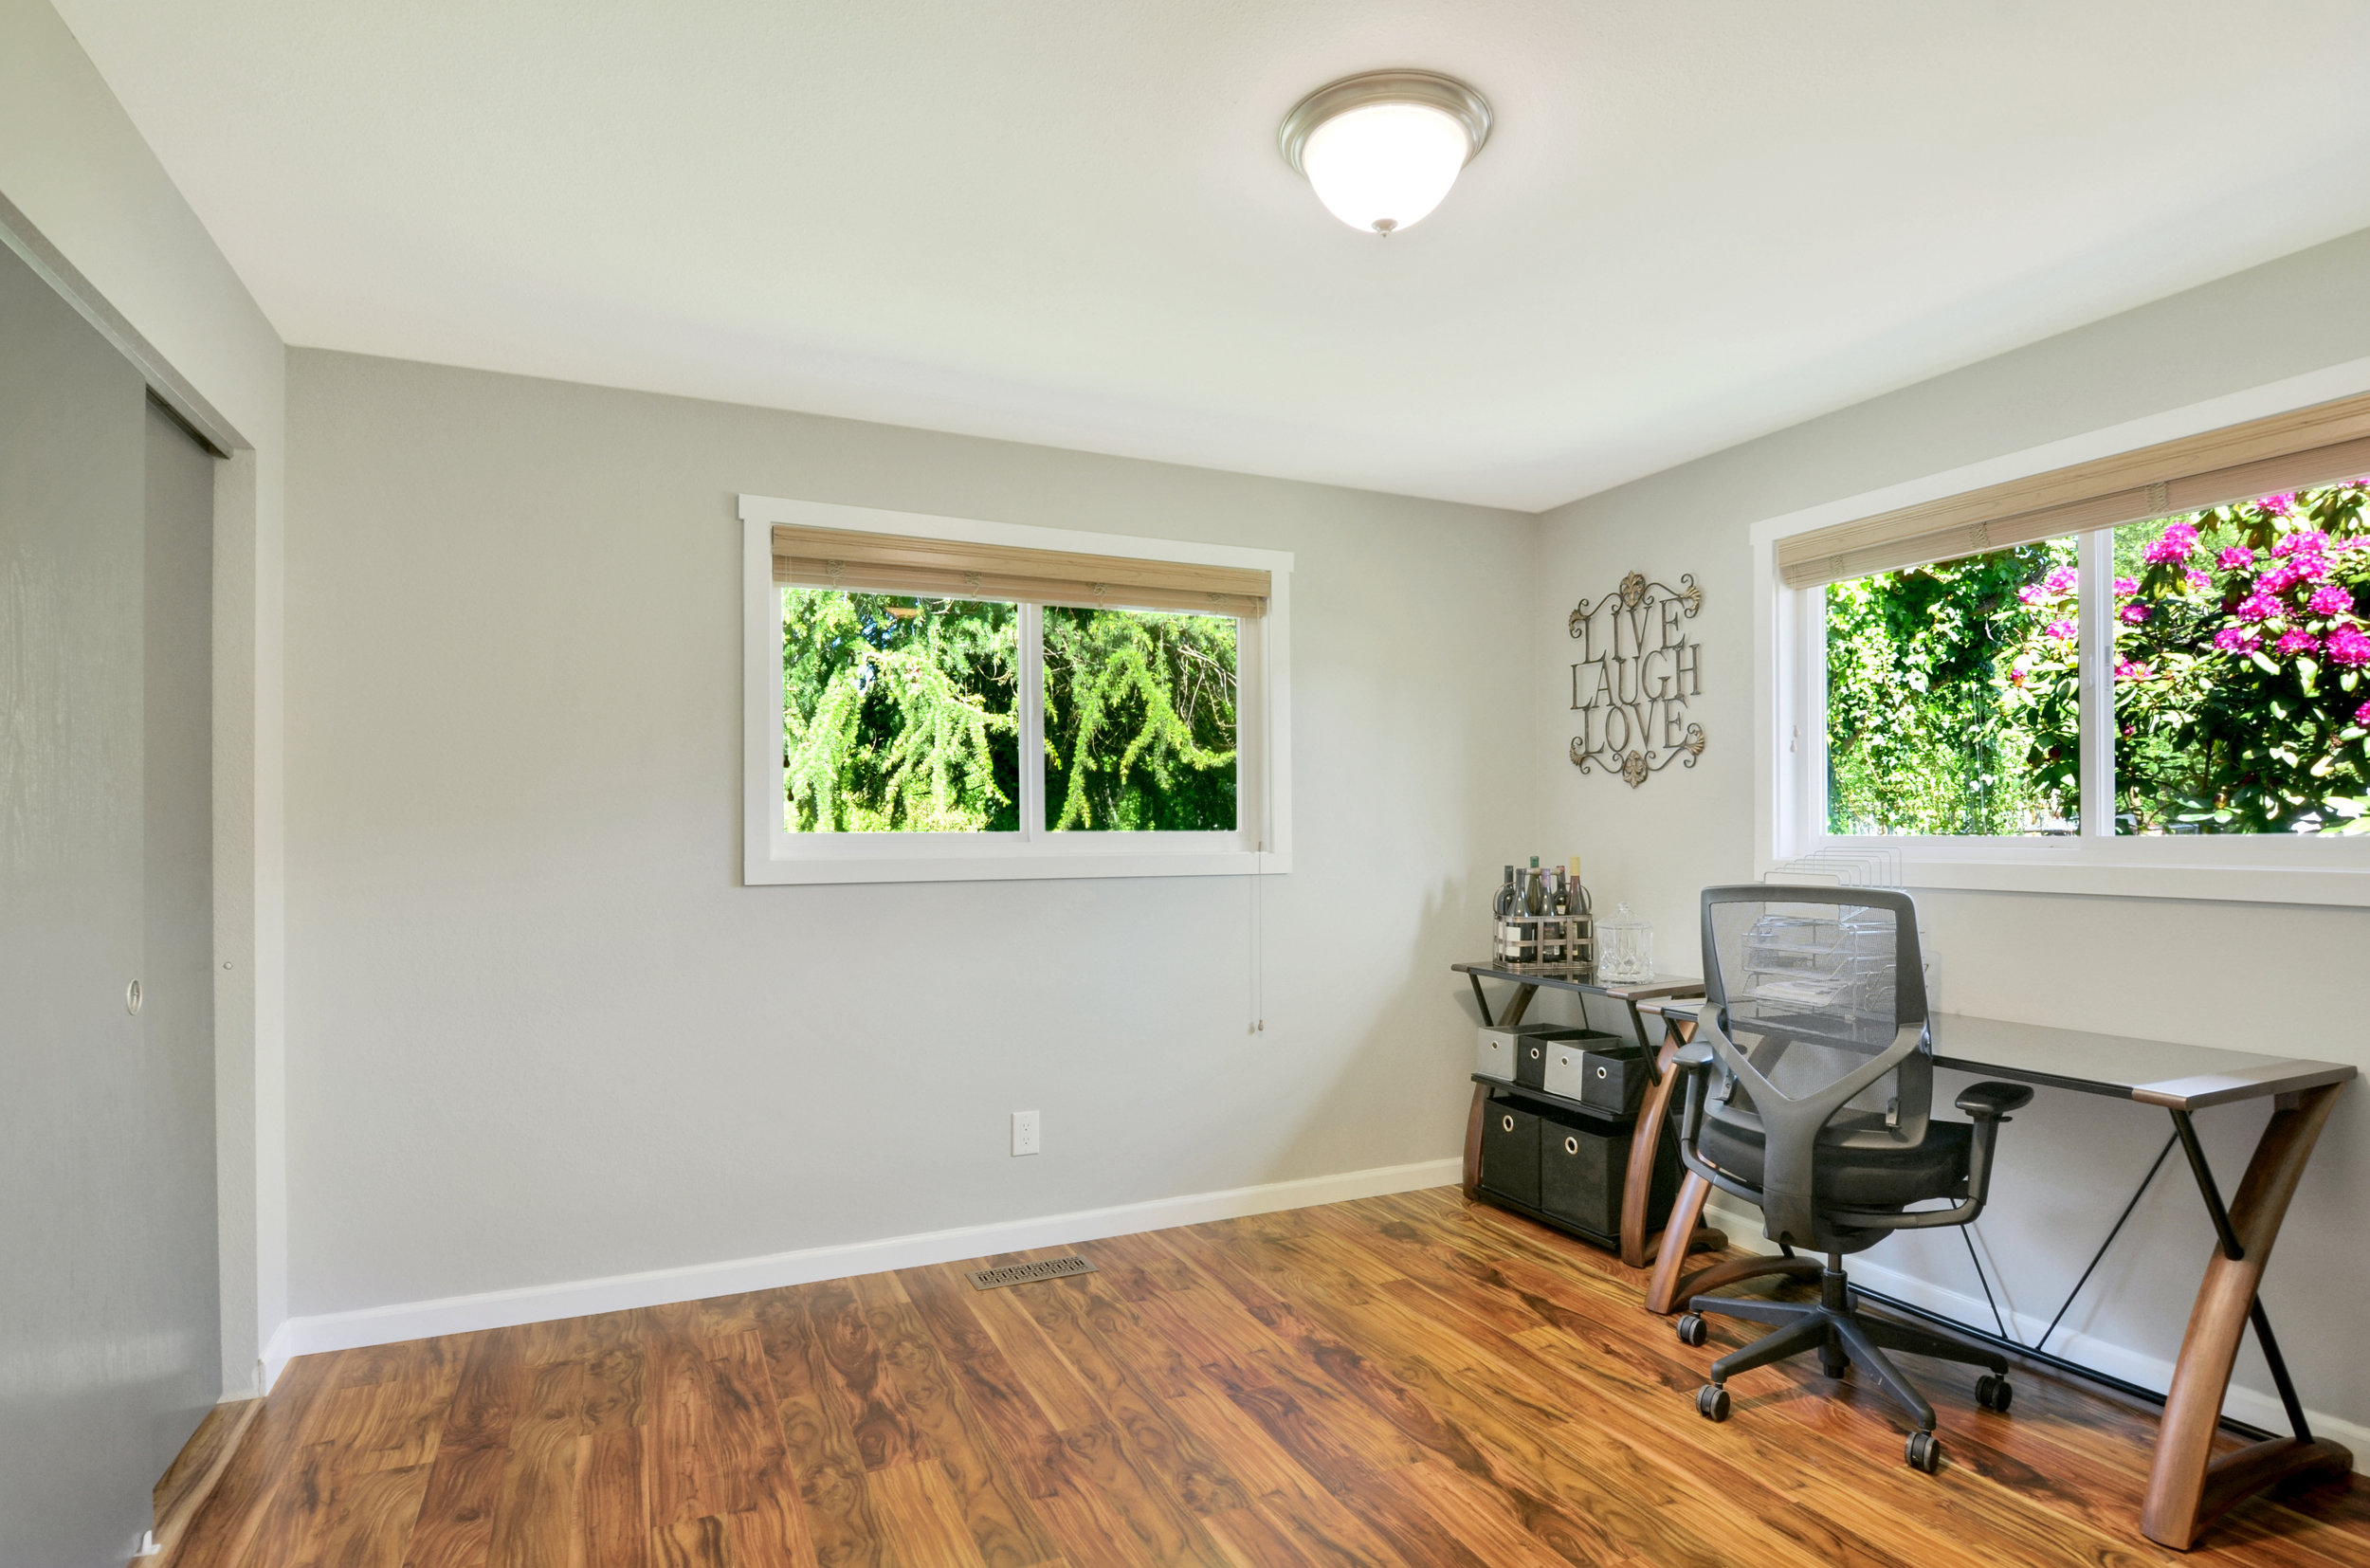 The 3rd bedroom with its big closet and engineered hardwood floor is also a great room to set up as an office, studio, den, playroom or guest room.